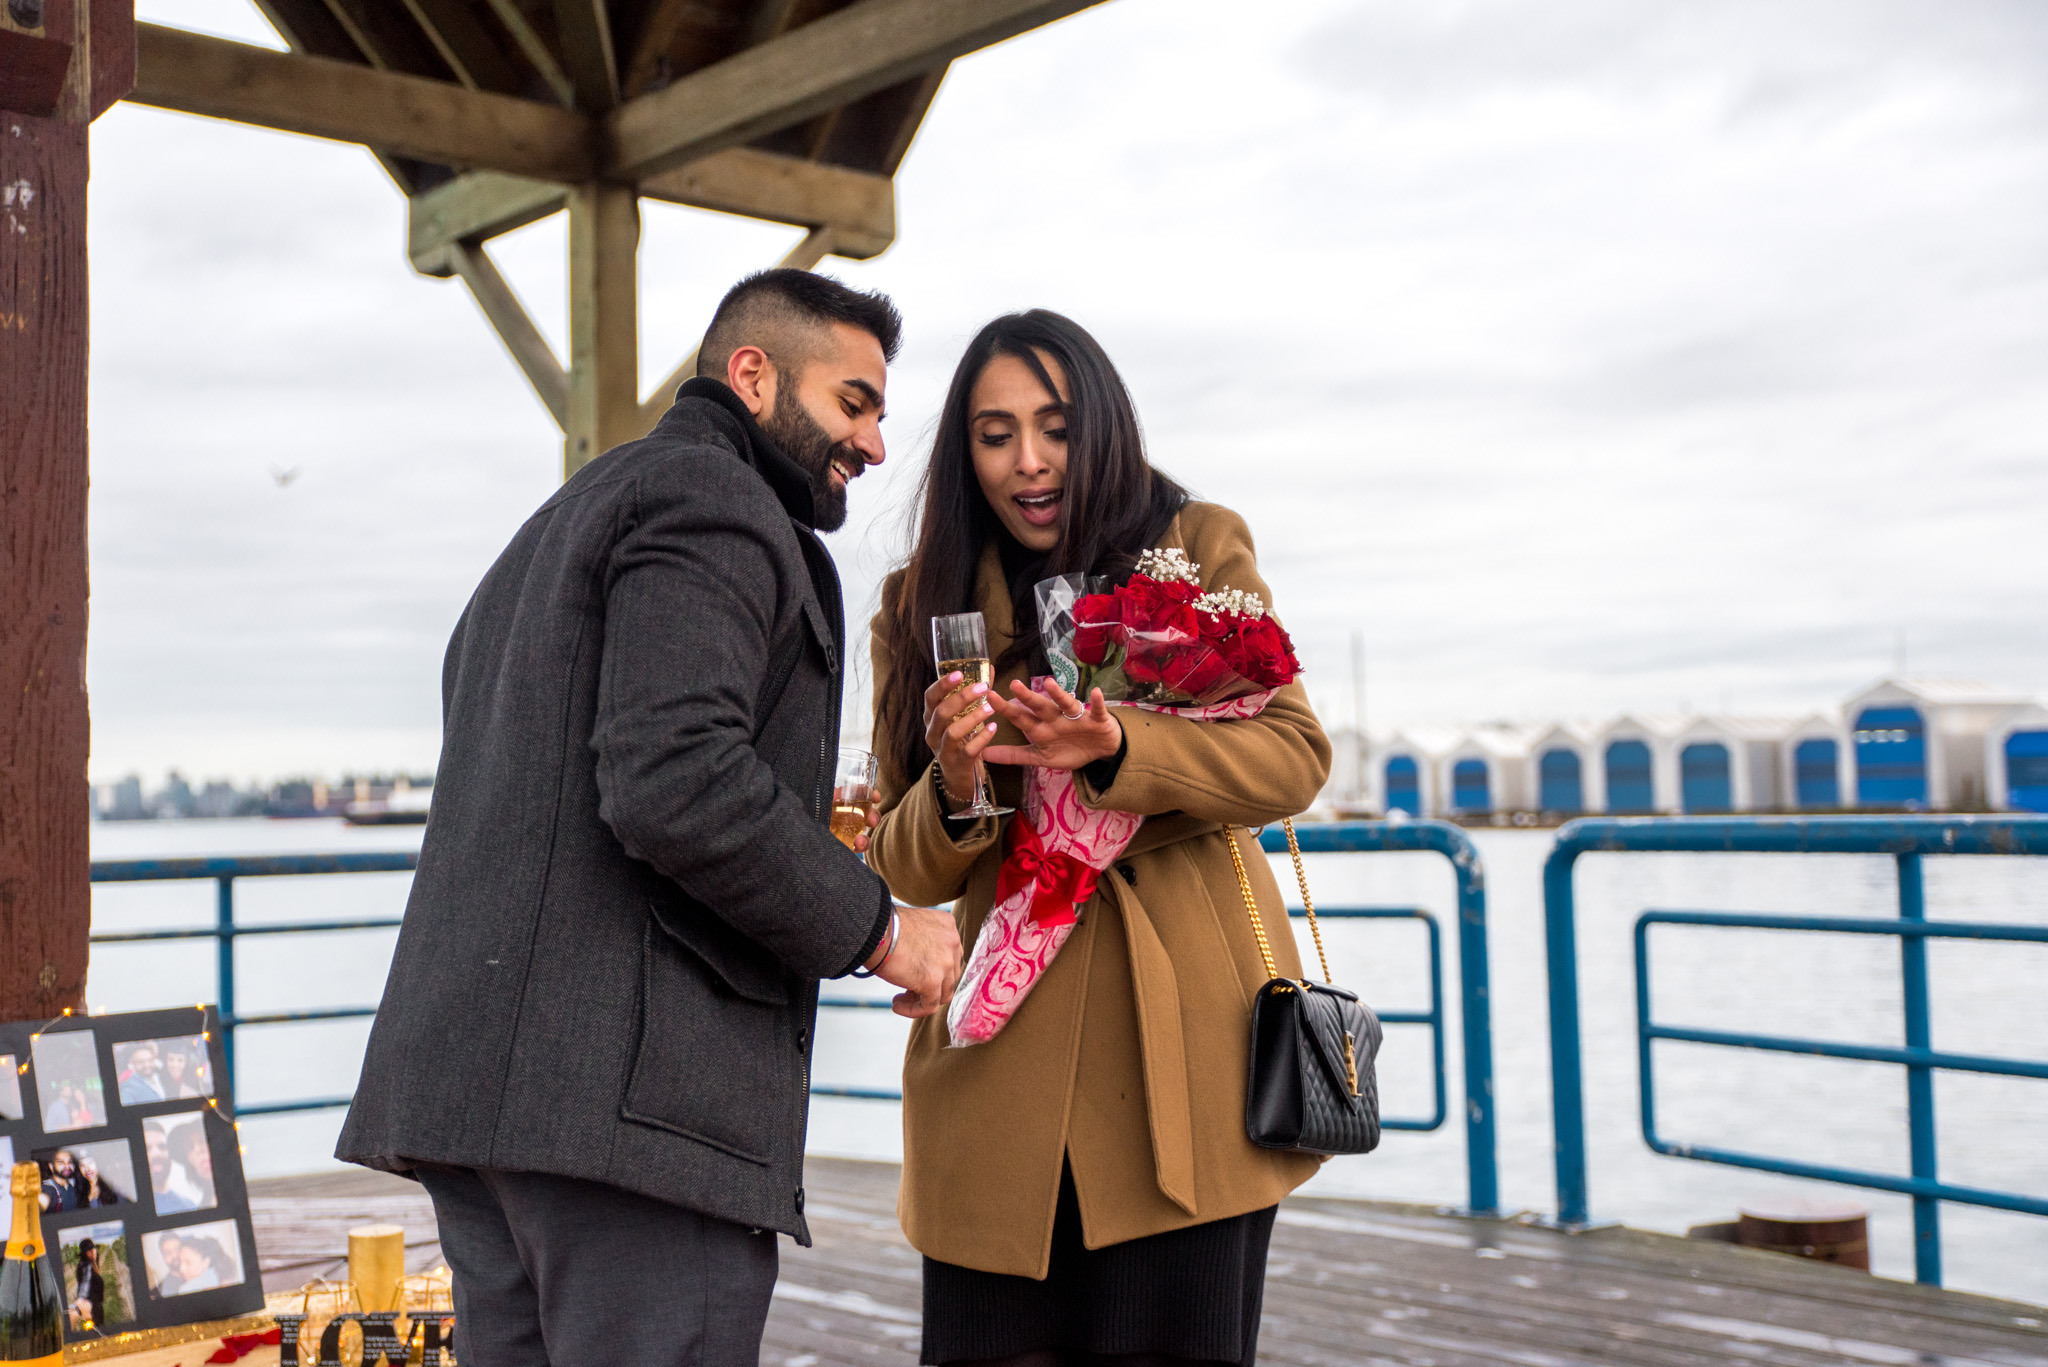 Lonsdale Quay Proposal Photographer-48.JPG